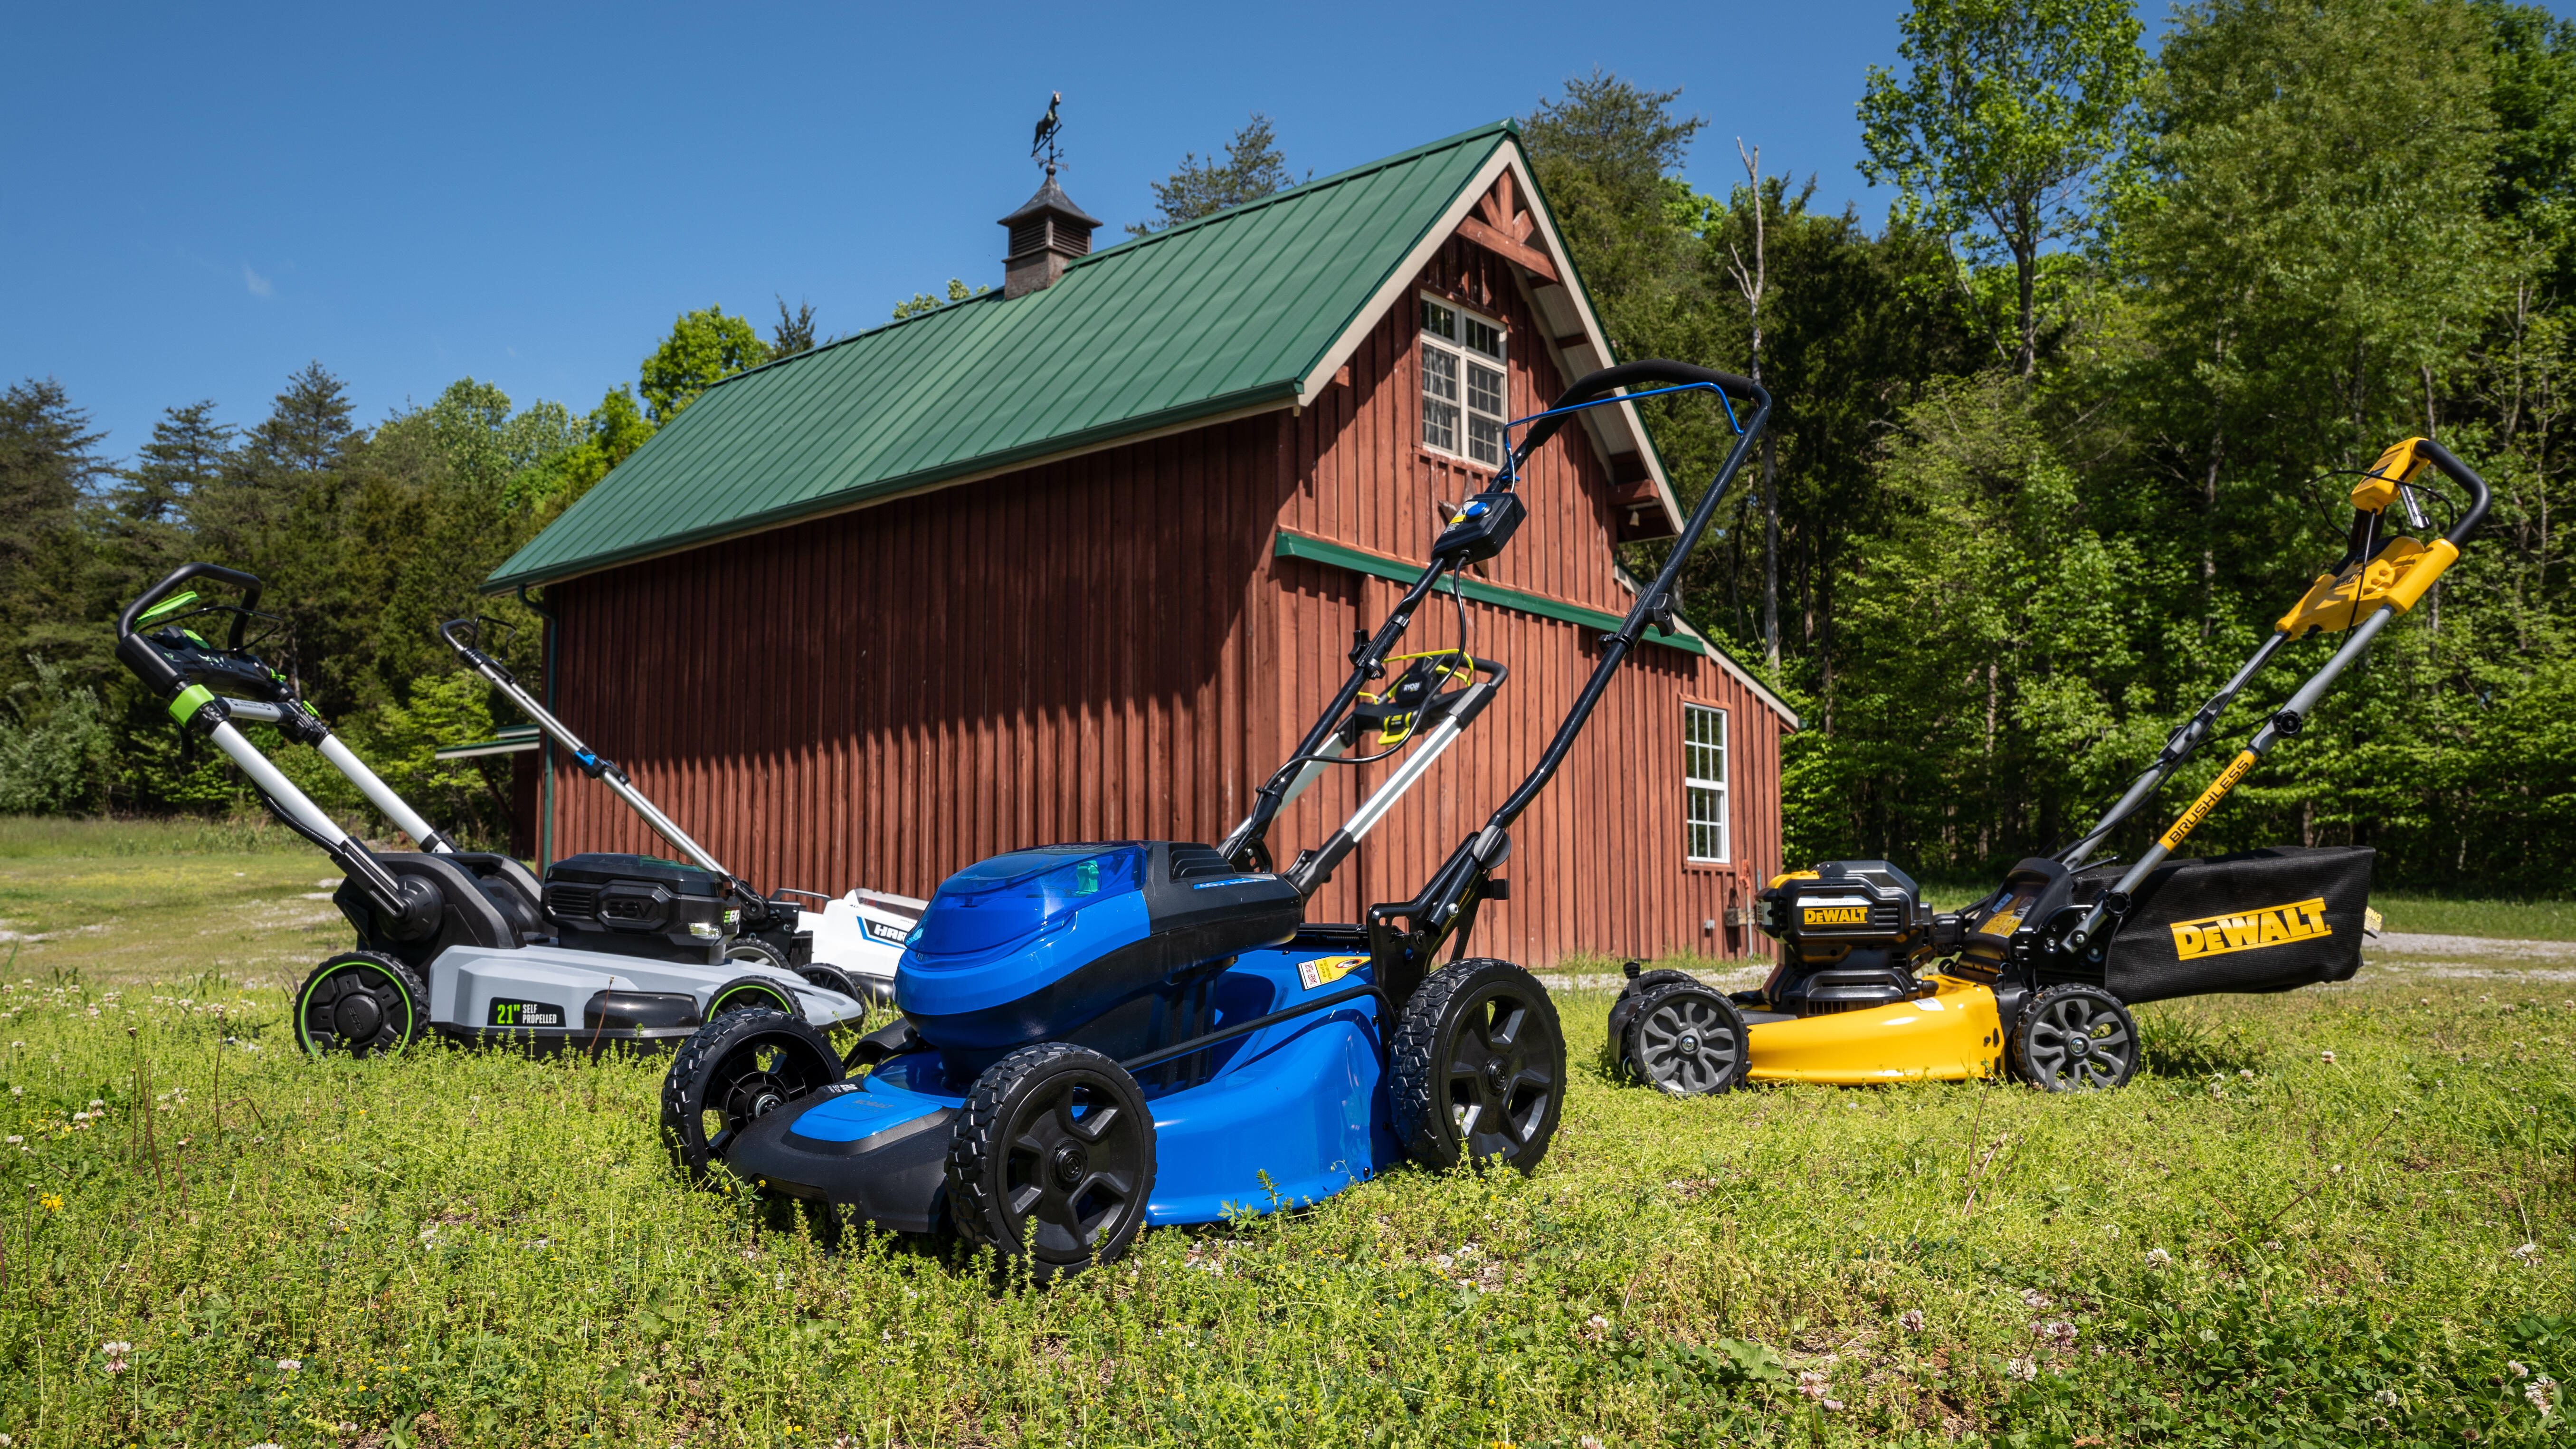 The best electric lawn mowers of 2021